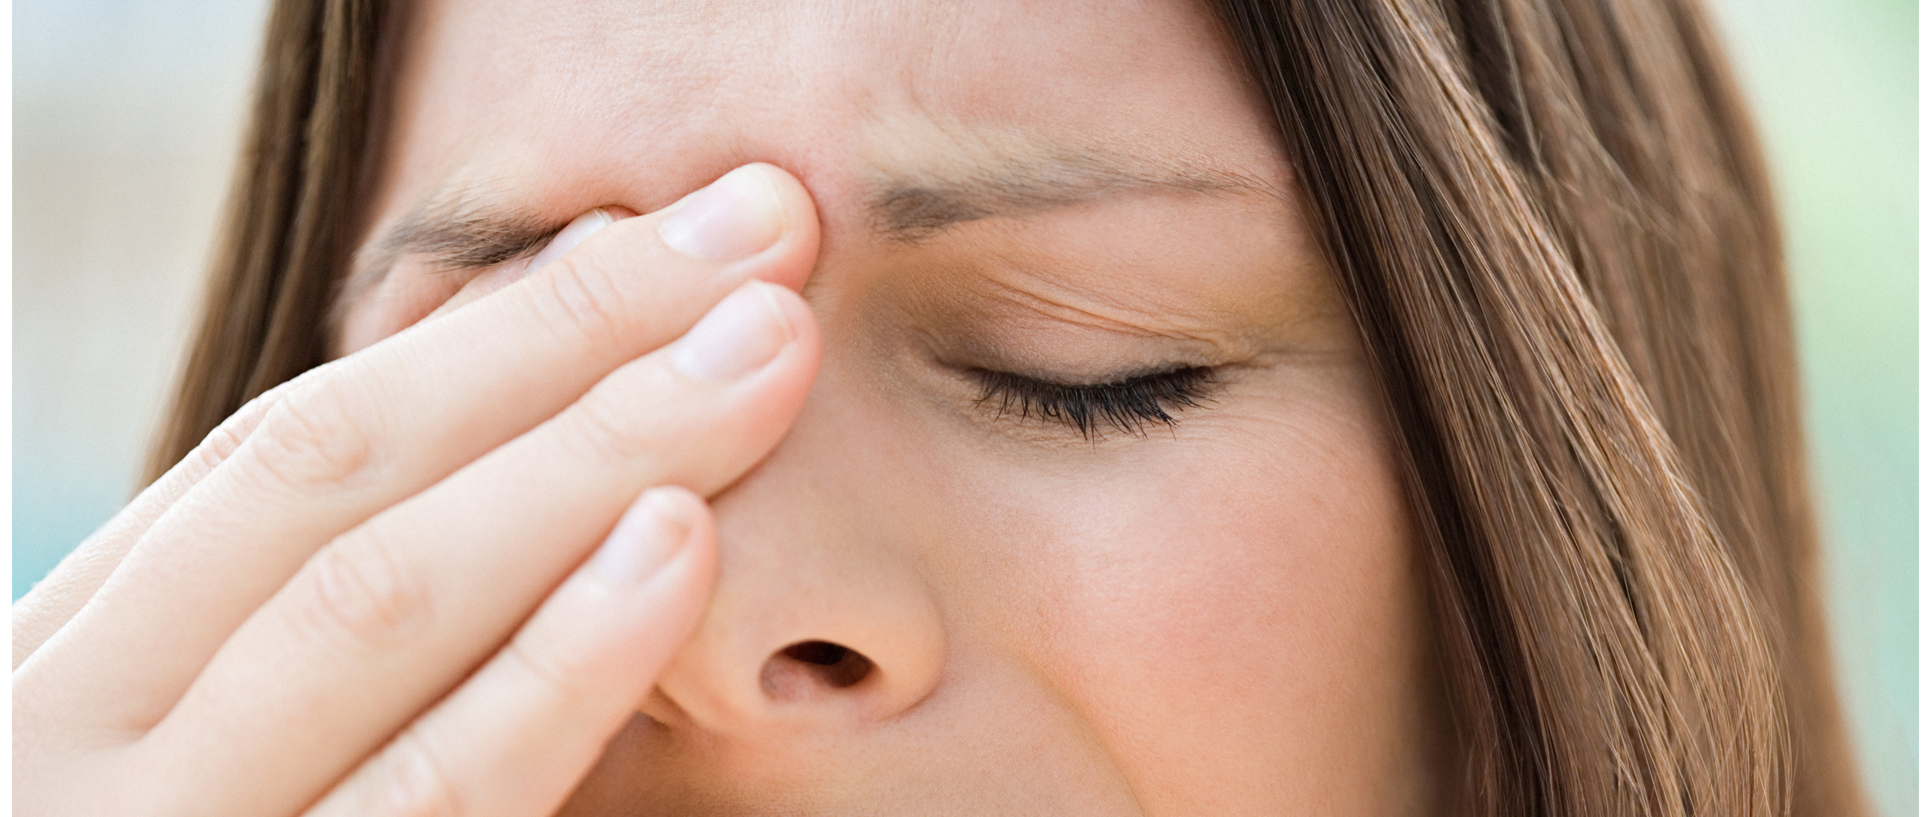 What Over-The-Counter Drugs Are Used To Treat Sinus Infections, And How Do They Work? - ABC News